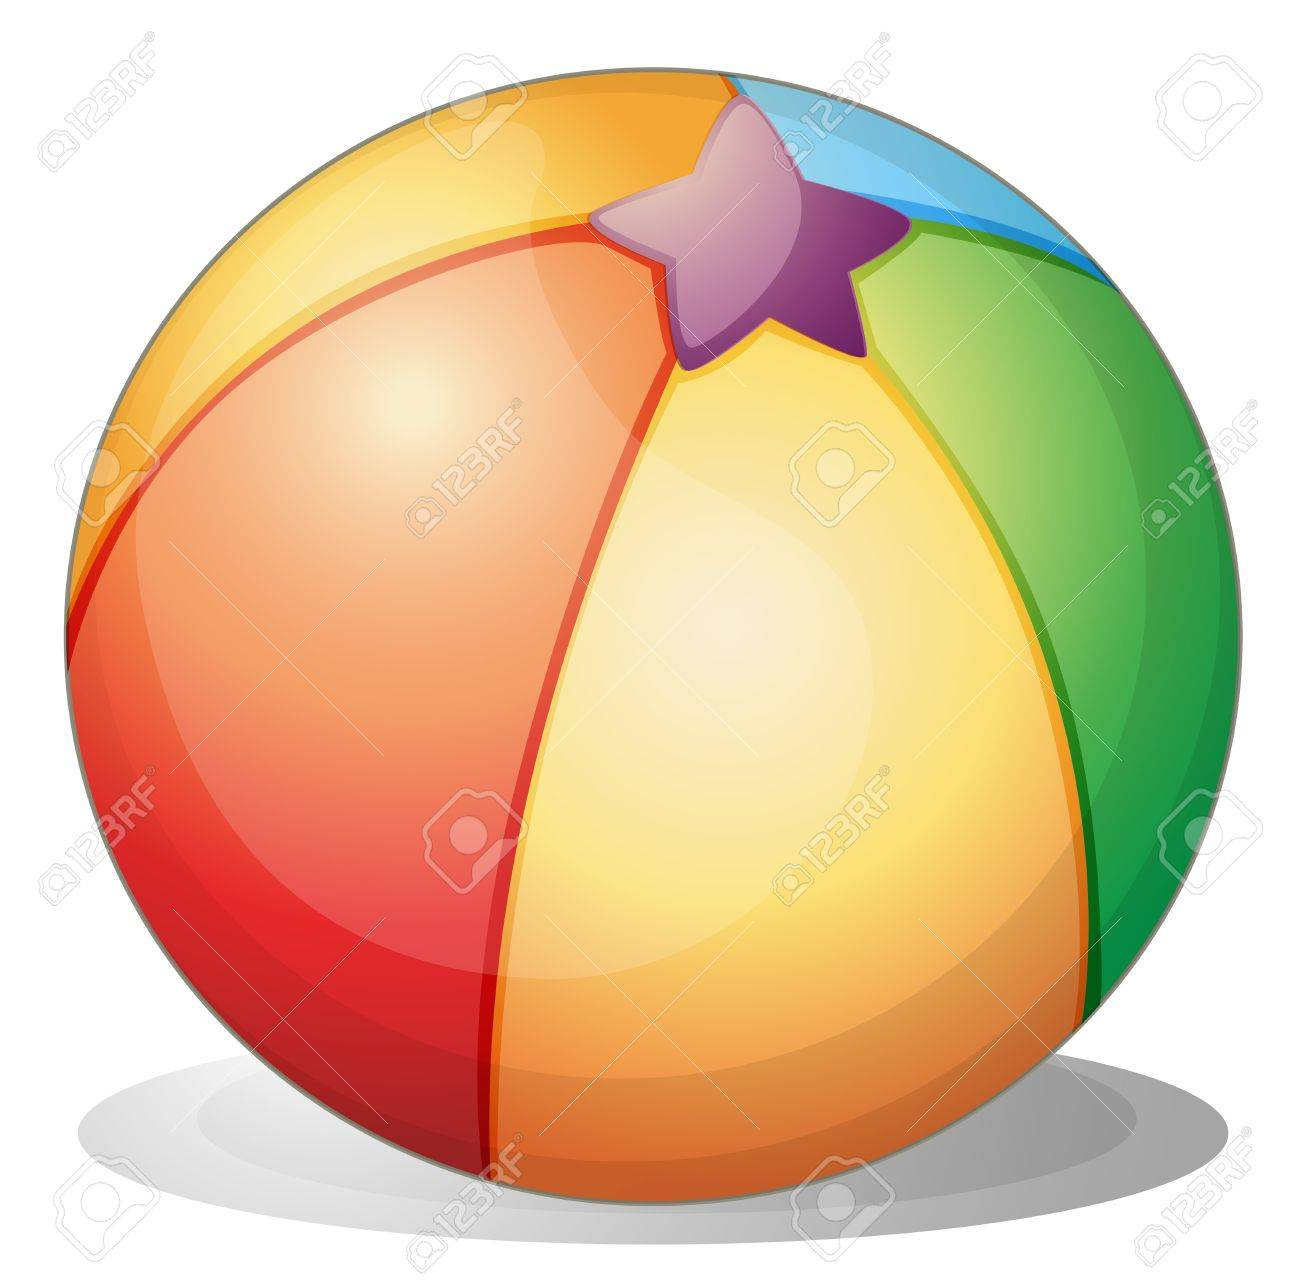 1300x1285 Illustration Of A Beach Ball On A White Background Royalty Free